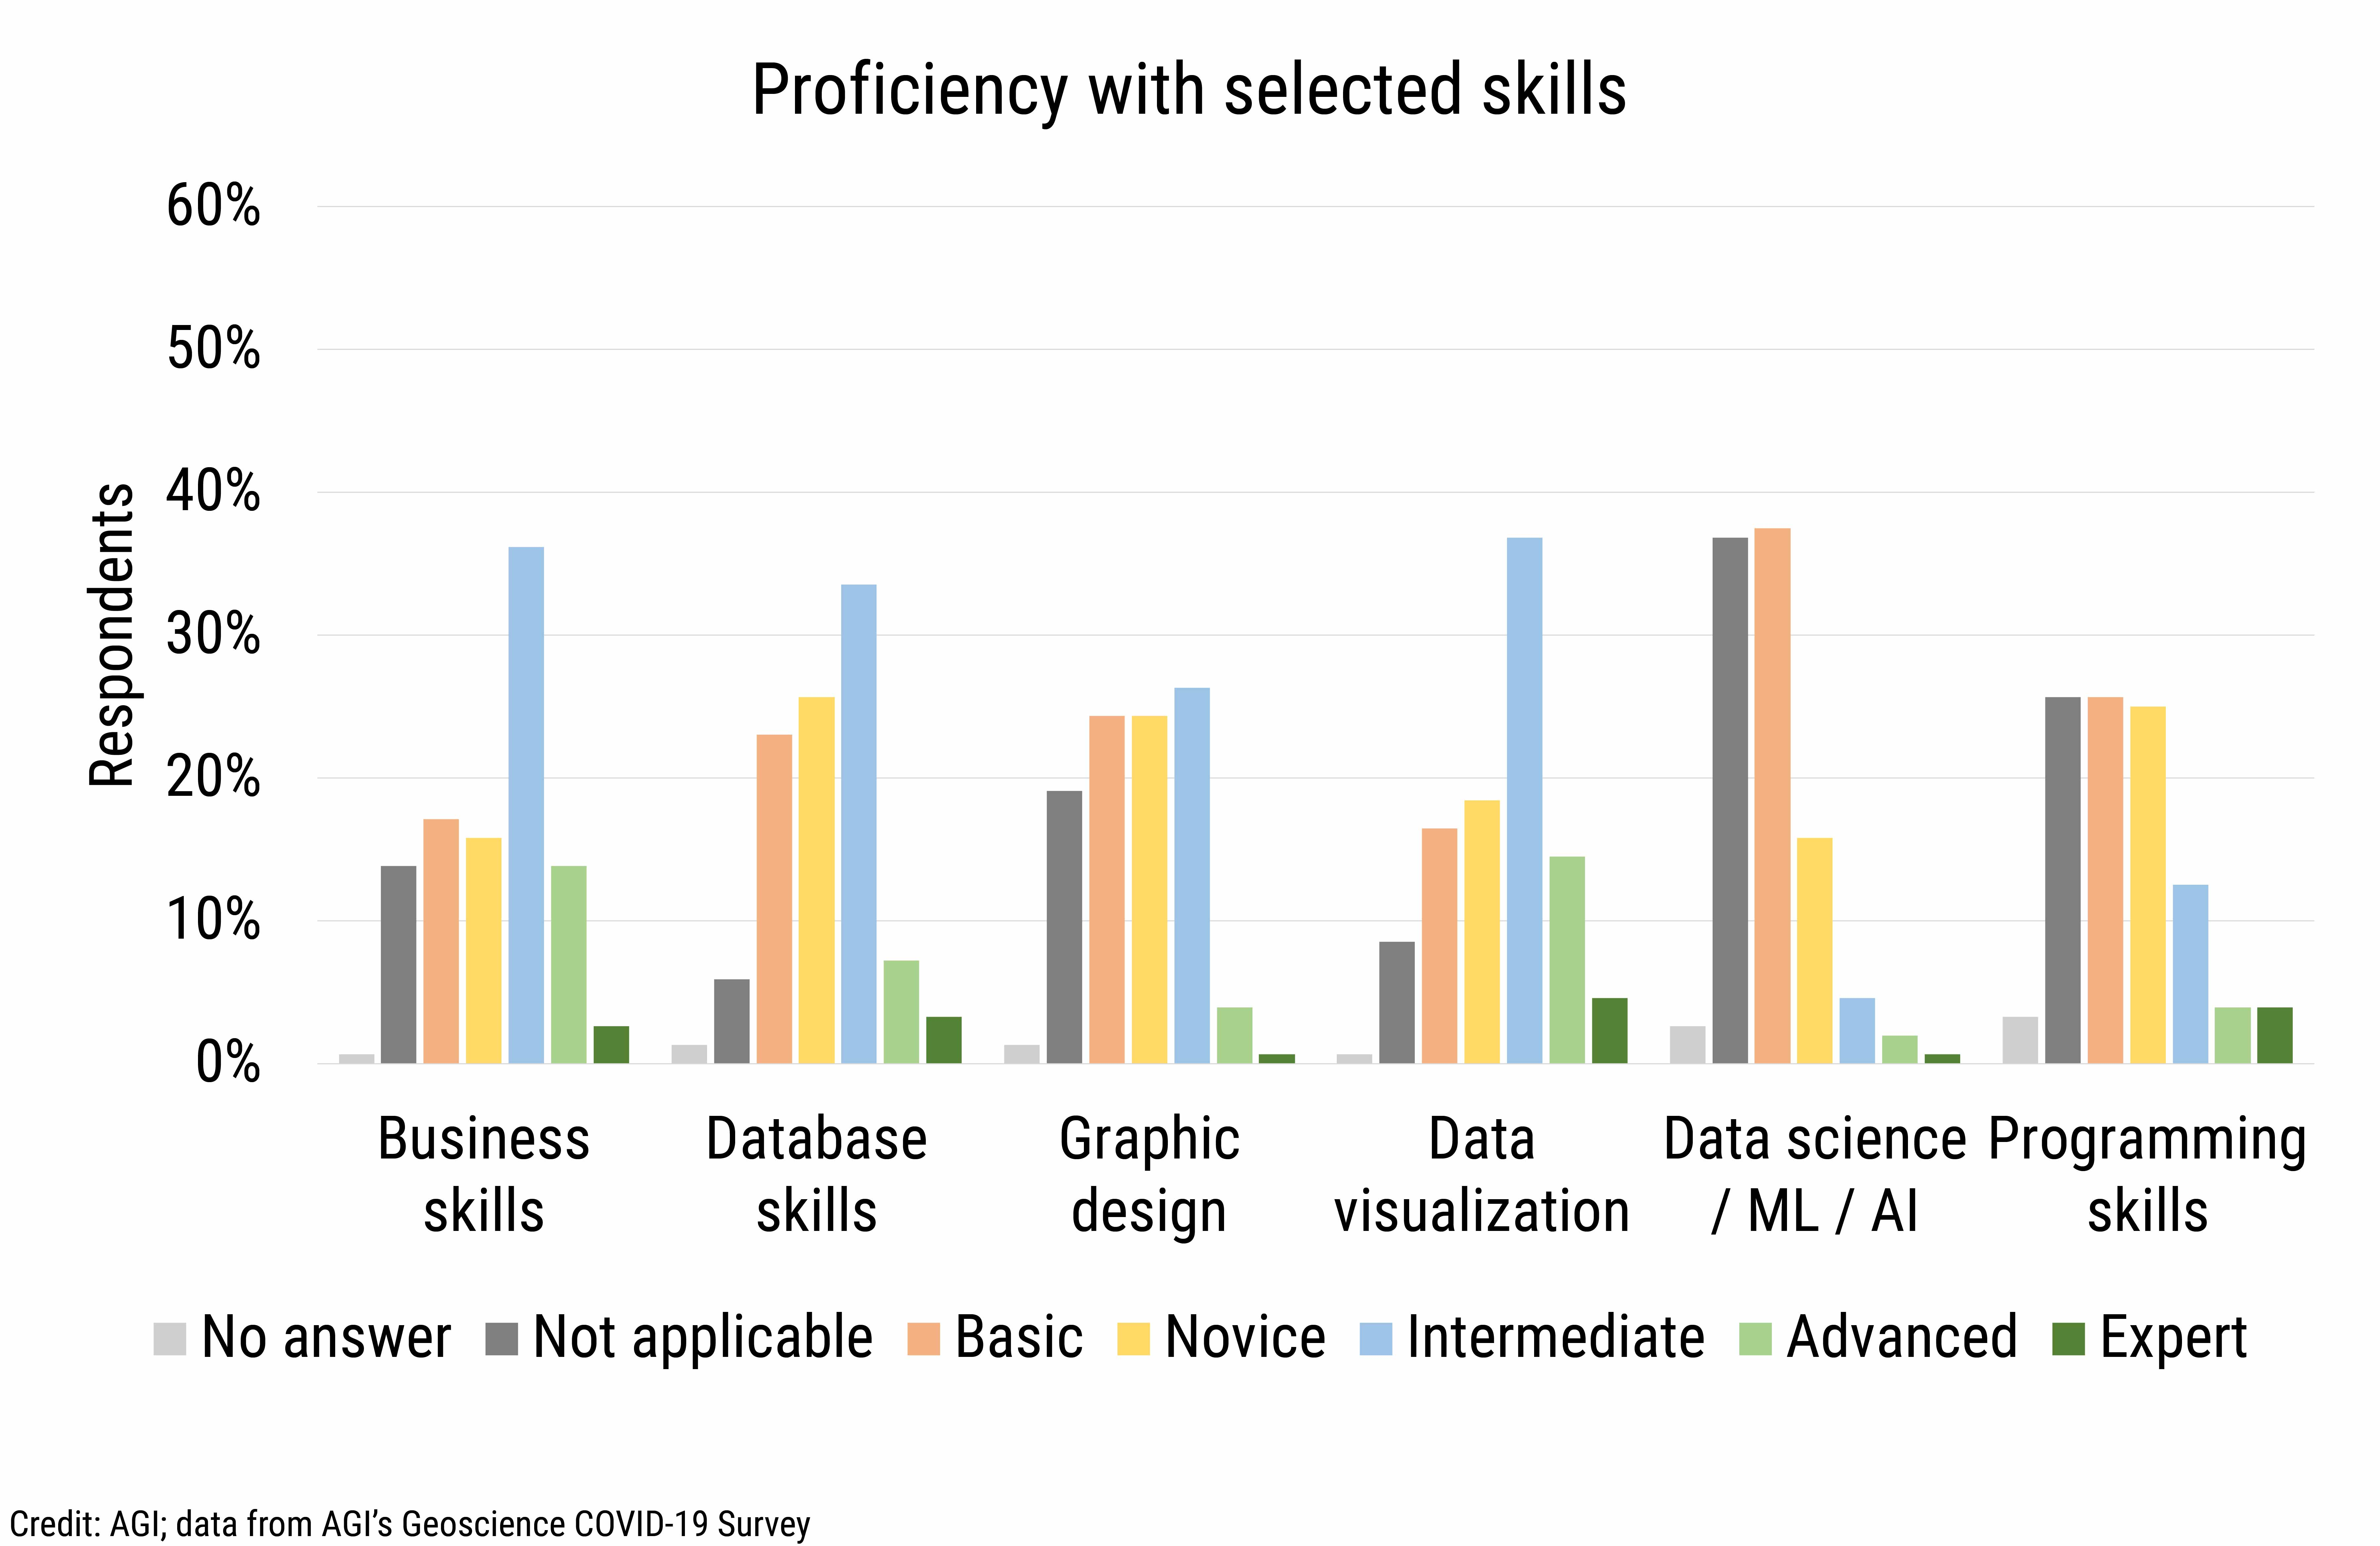 DB_2021-009 chart 03: Proficiency with selected skills (Credit: AGI; data from AGI's Geoscience COVID-19 Survey)